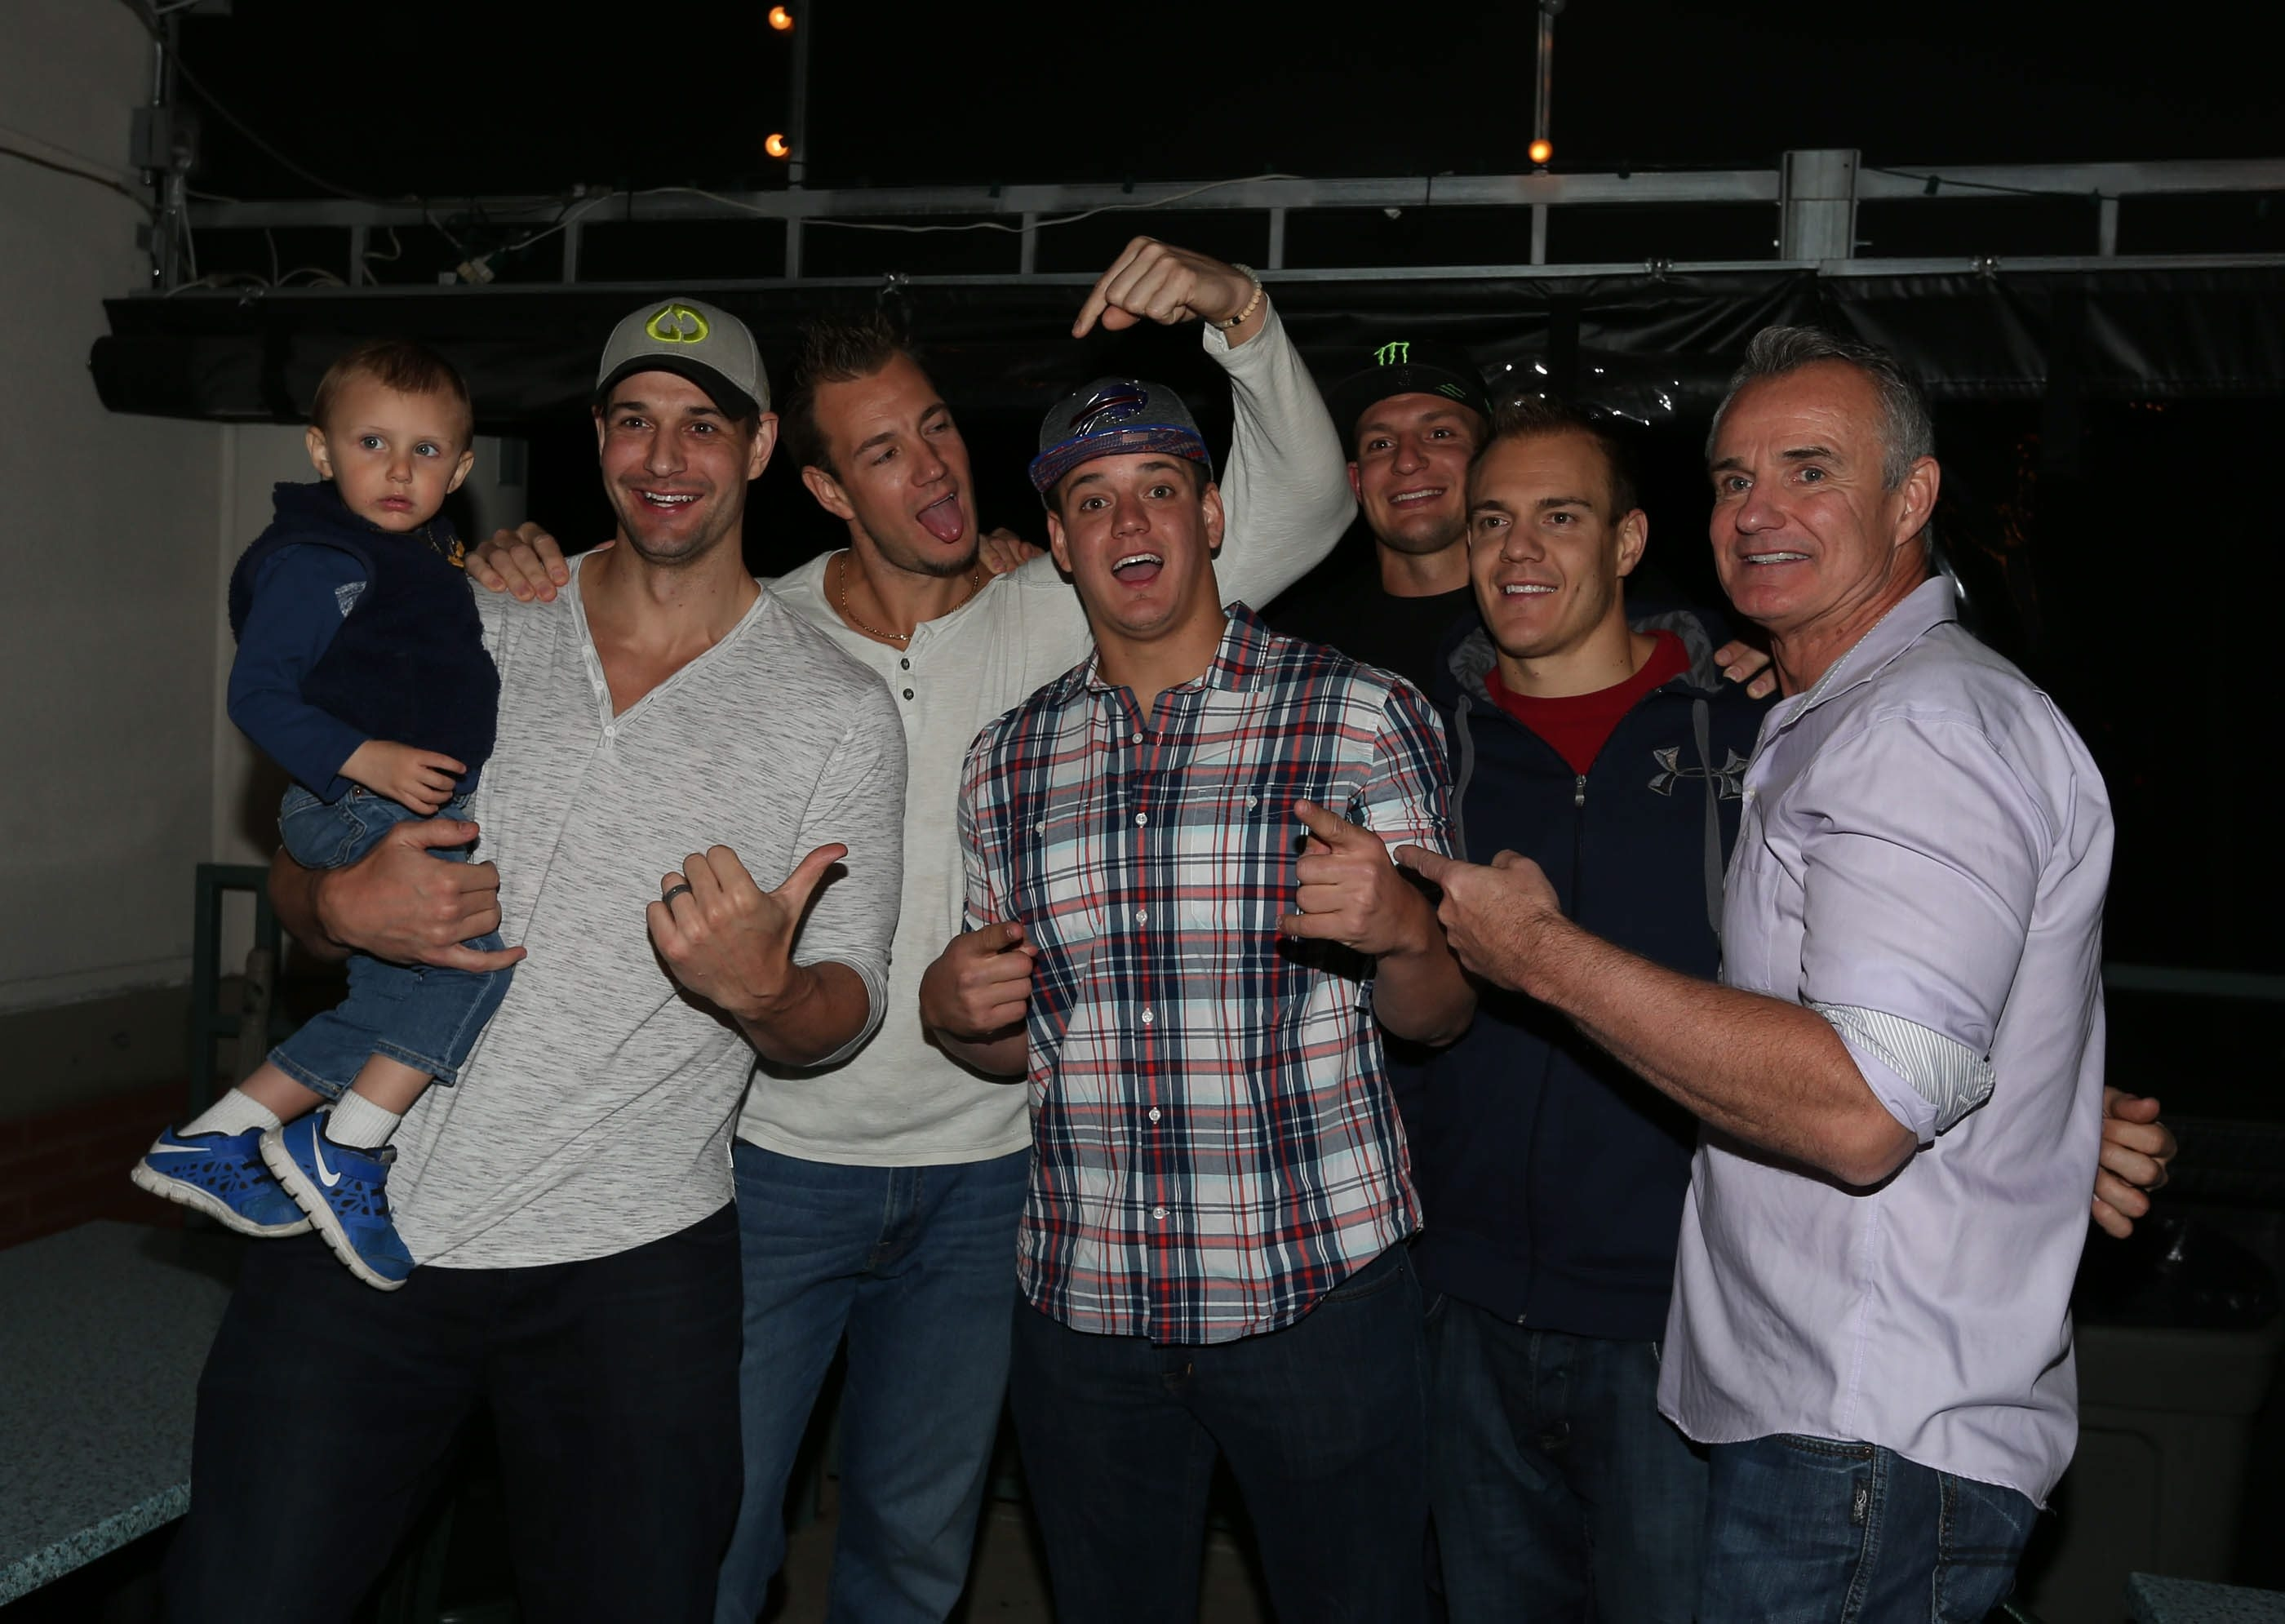 From left, Gordie Jr., Dan, Glenn, Rob, Chris, and Gordie Gronkowski celebrate Glenn's signing as a free agent with the Bills.